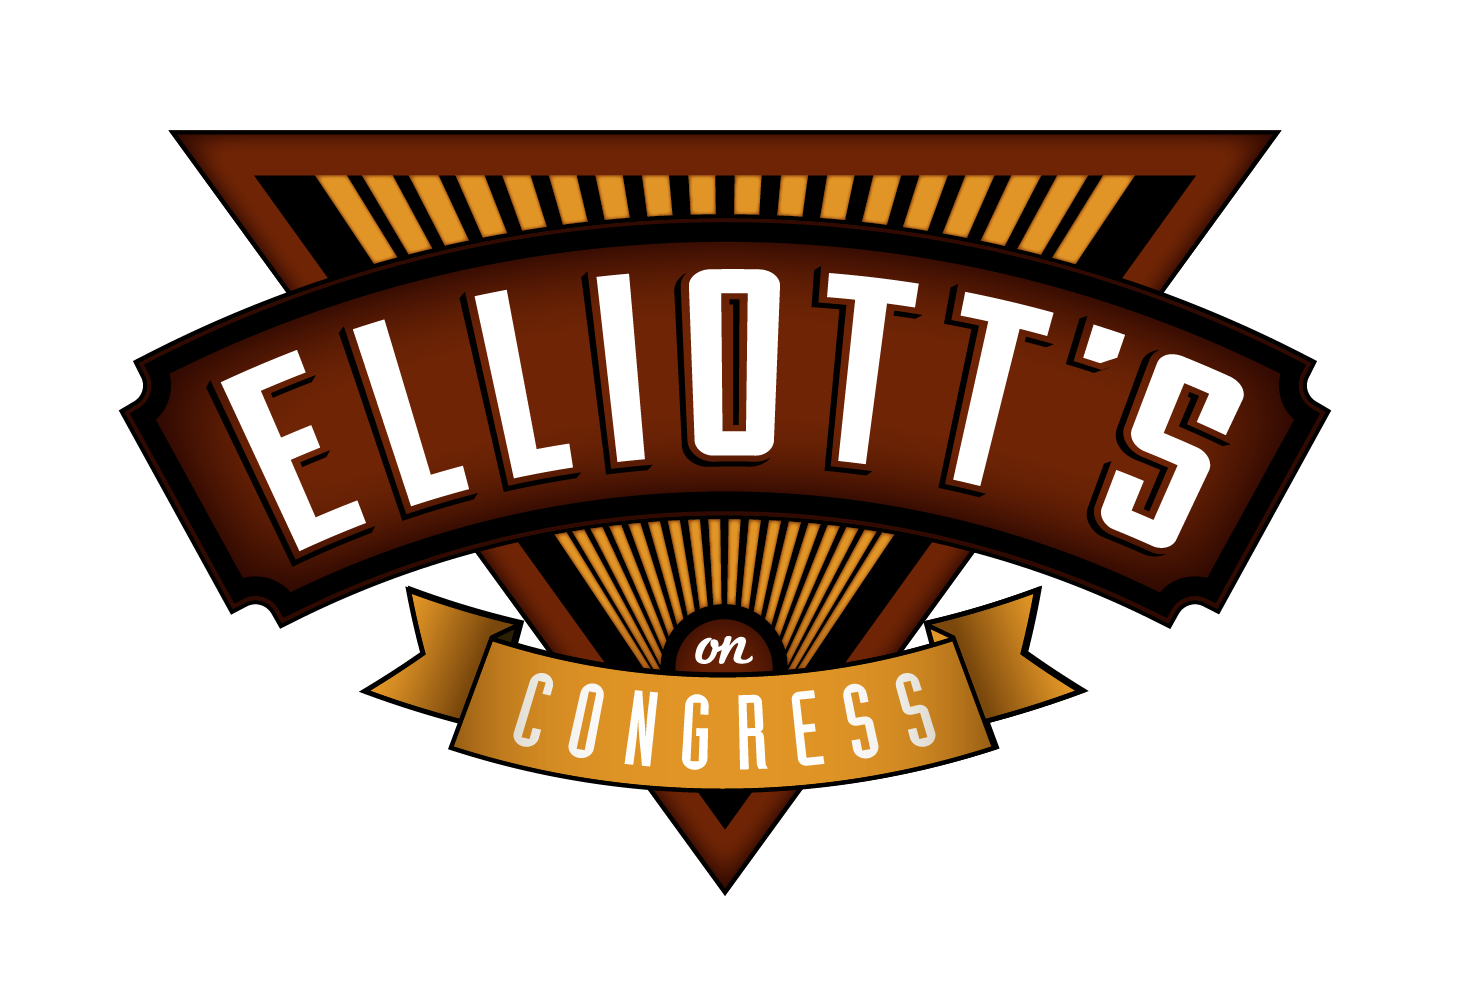 Elliott's On Congress